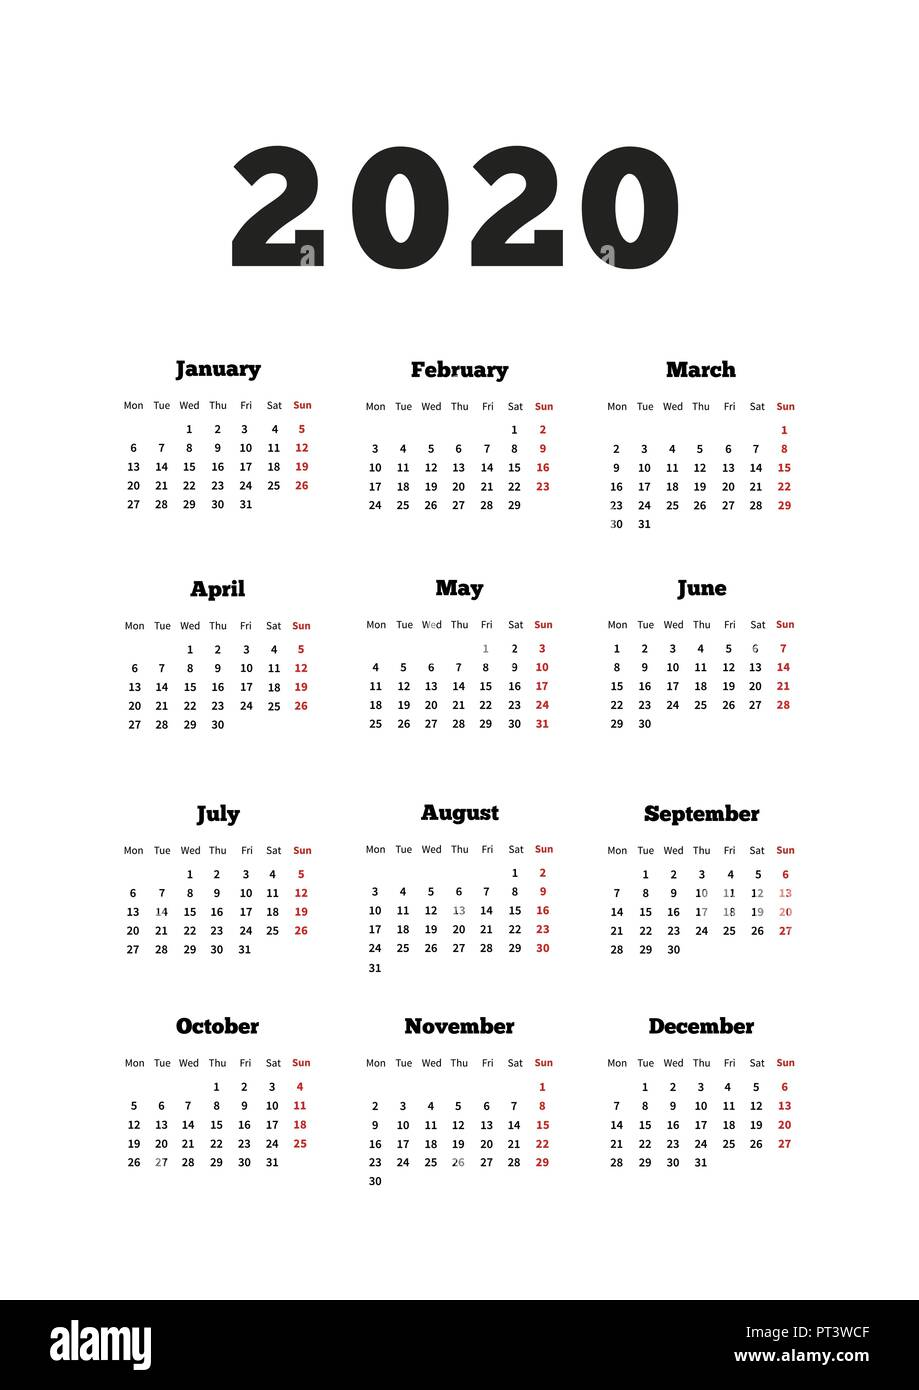 Weeks Of The Year Calendar 2020 Calendar on 2020 year with week starting from monday, A4 size